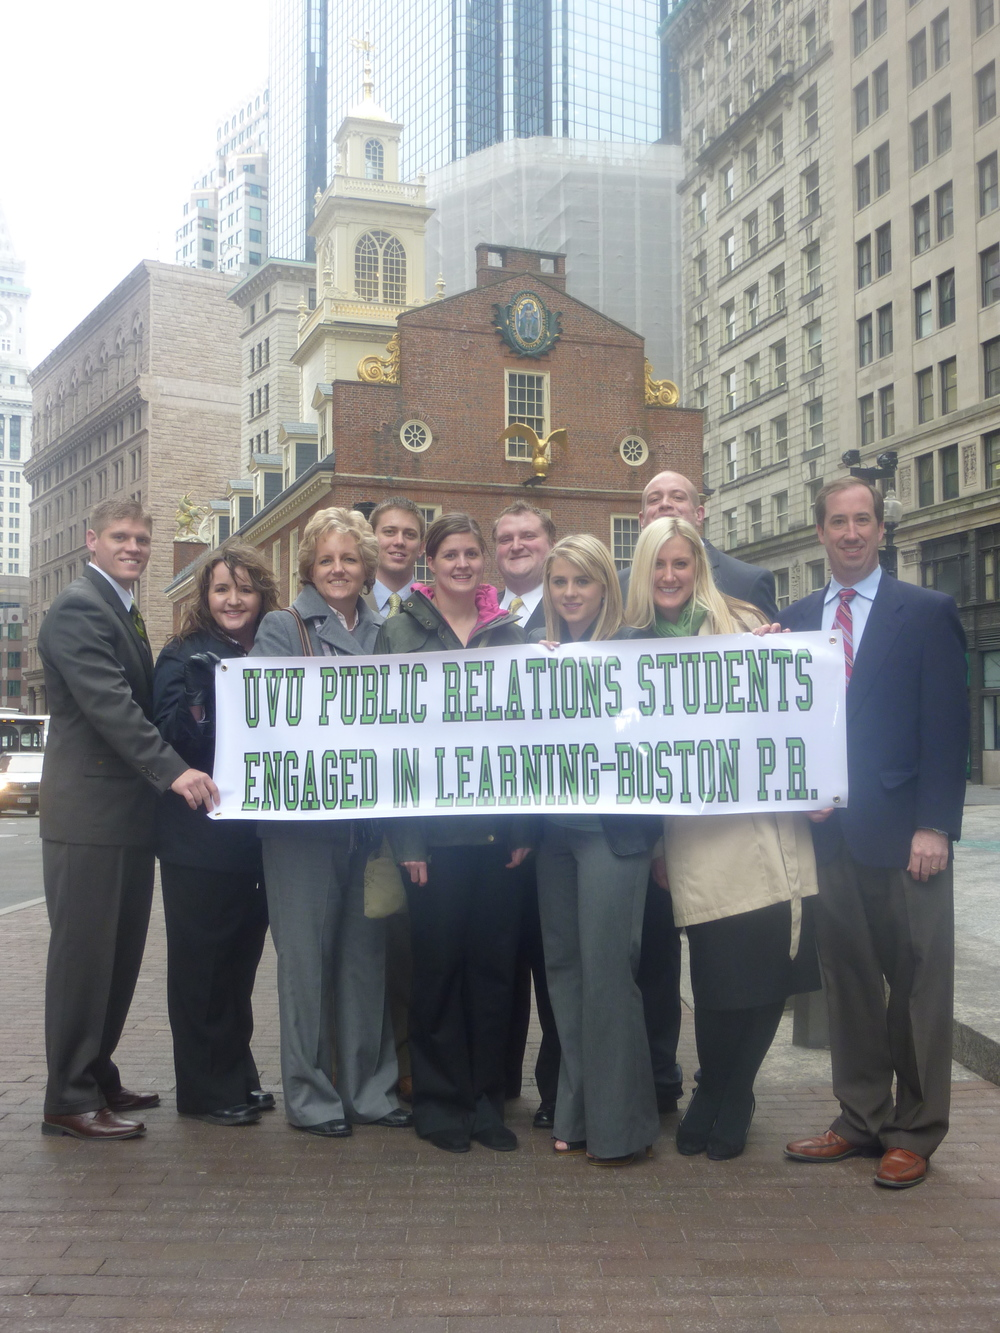 PR students in Boston - downtown Boston with sign.jpg